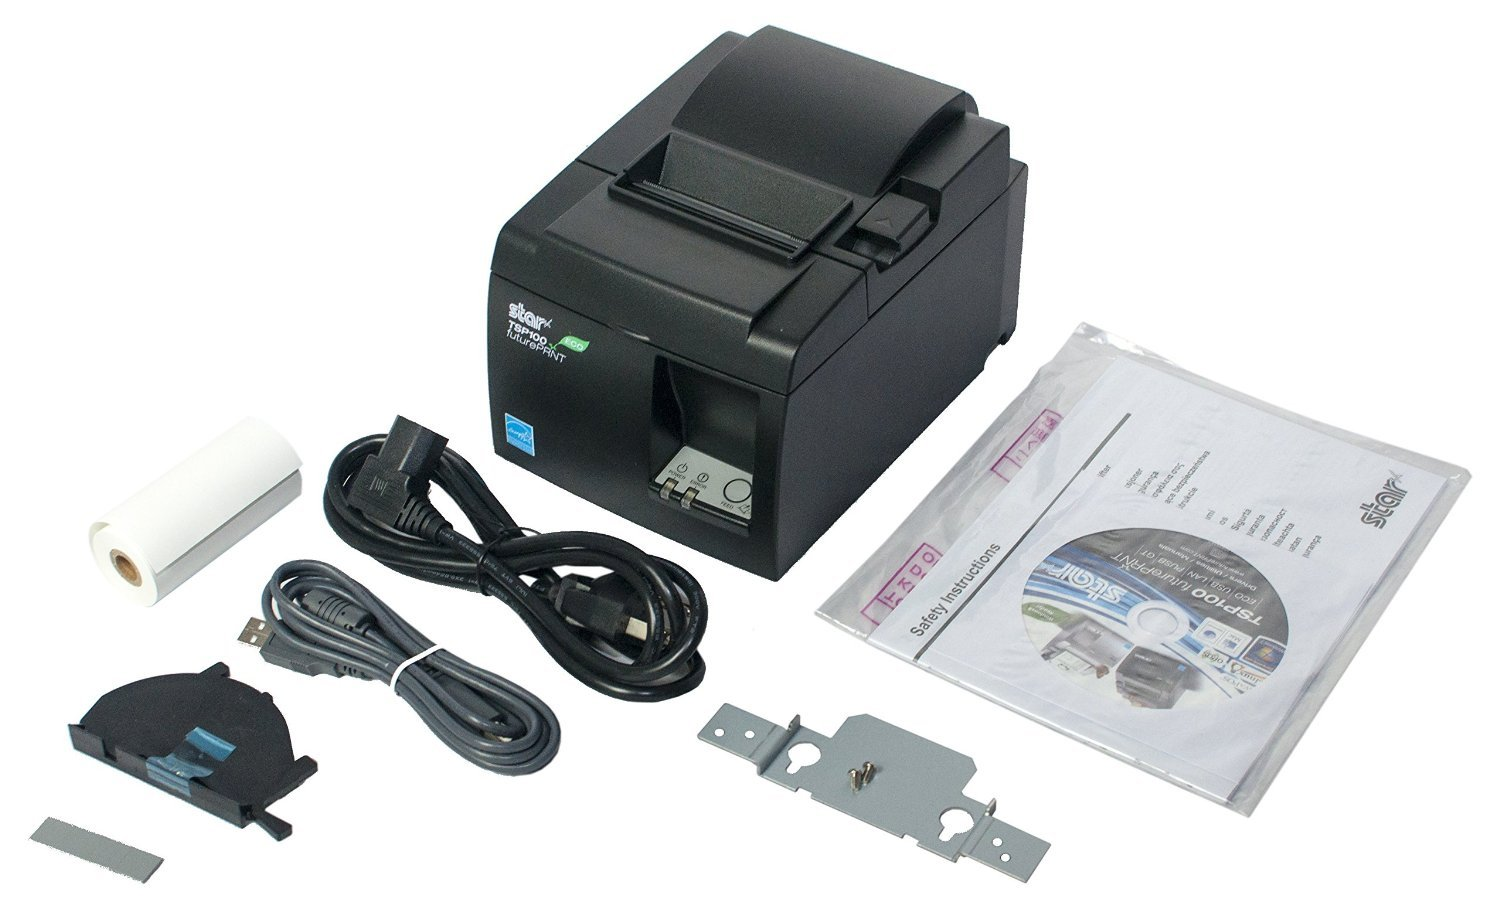 SQUARE POS HARDWARE BUNDLE - Star Micronics TSP143IIU 39464011 USB Printer and Epsilont Cash Drawer 16'' by 16'' 5 Bill 8 Coin by Epsilont (Image #4)